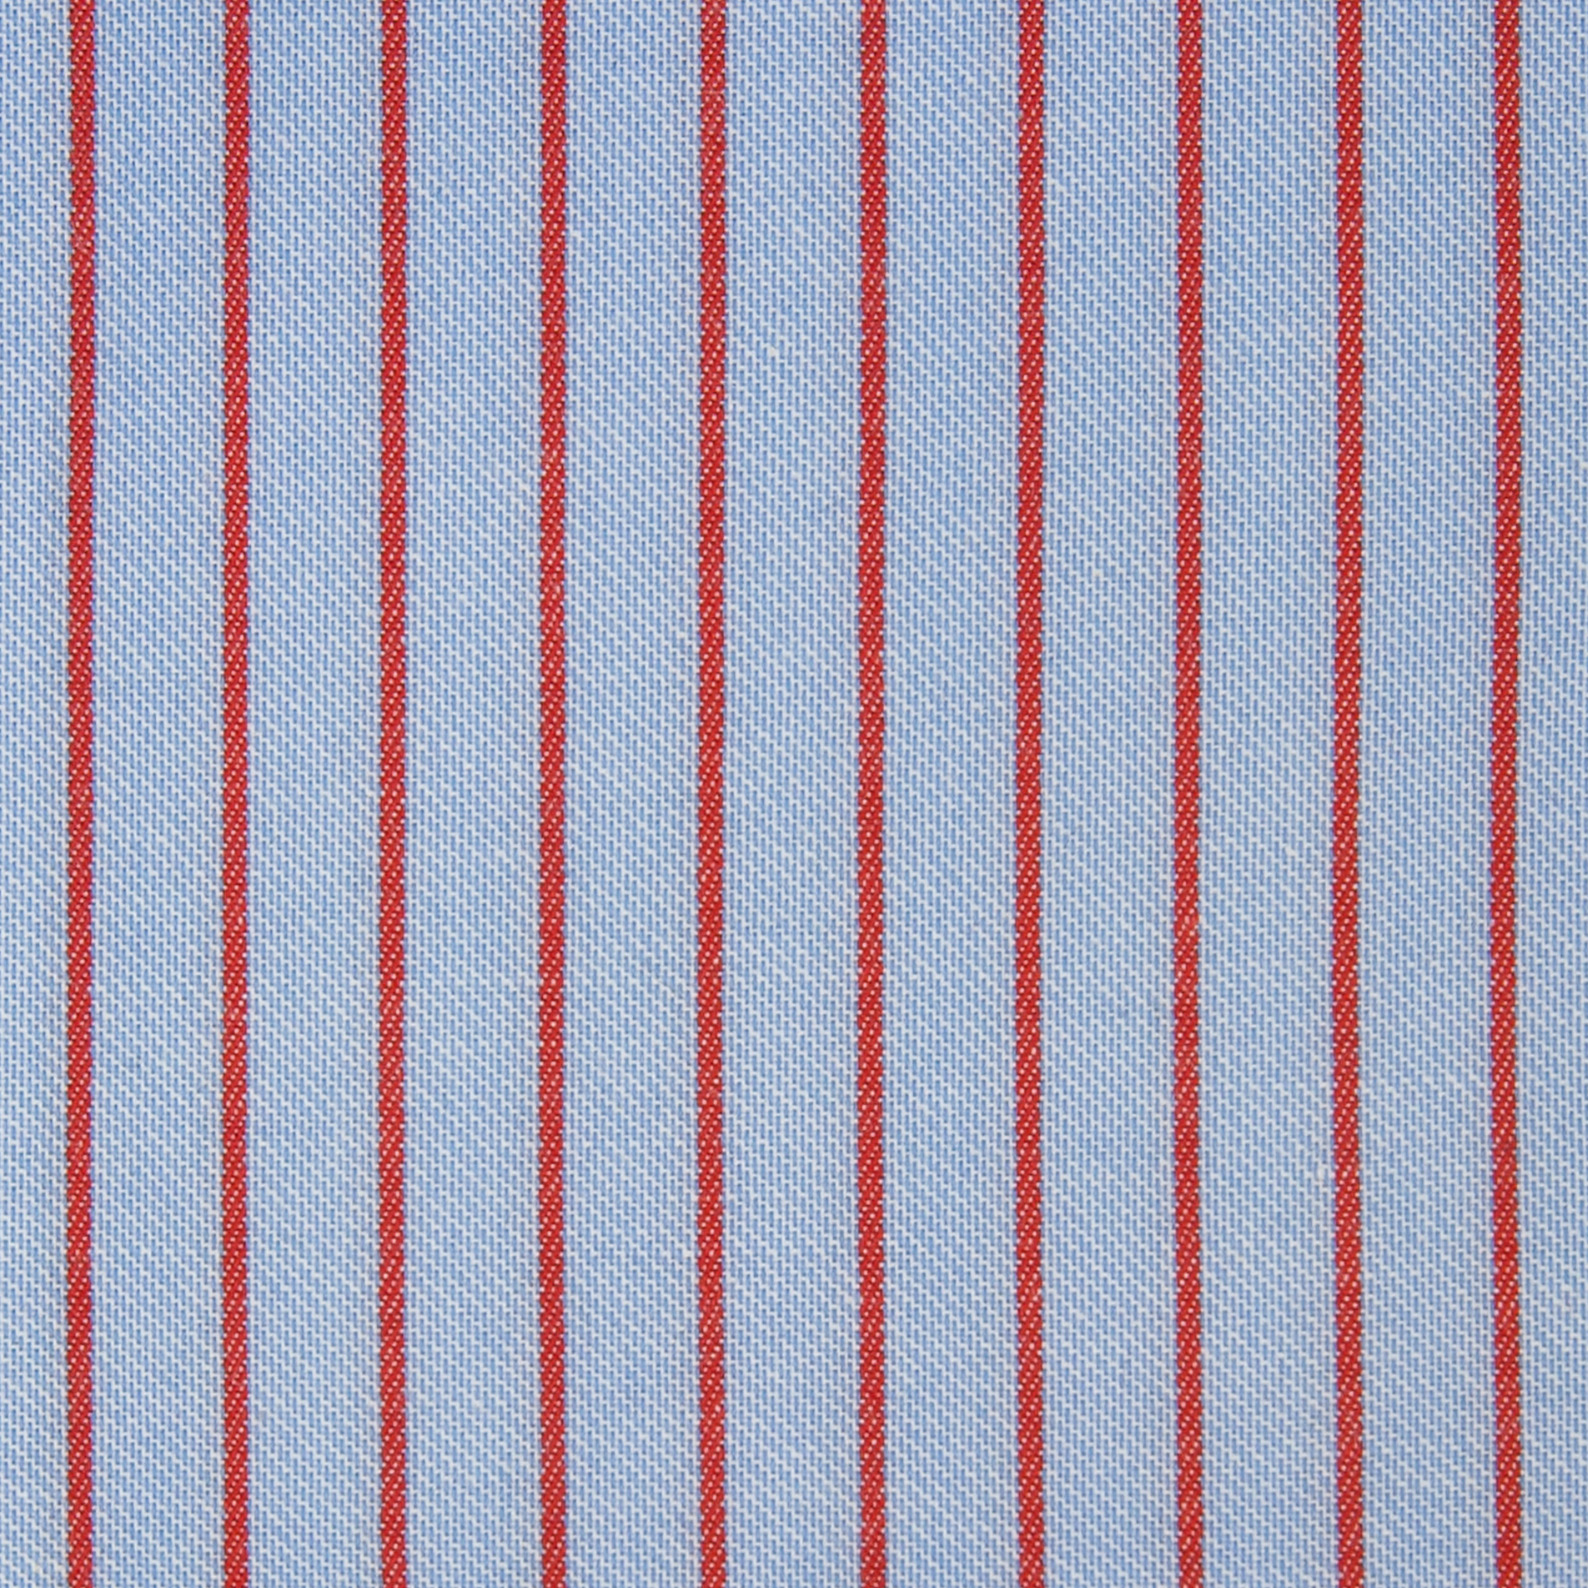 Buy tailor made shirts online - Arturo Collection - Red Stripe on Blue